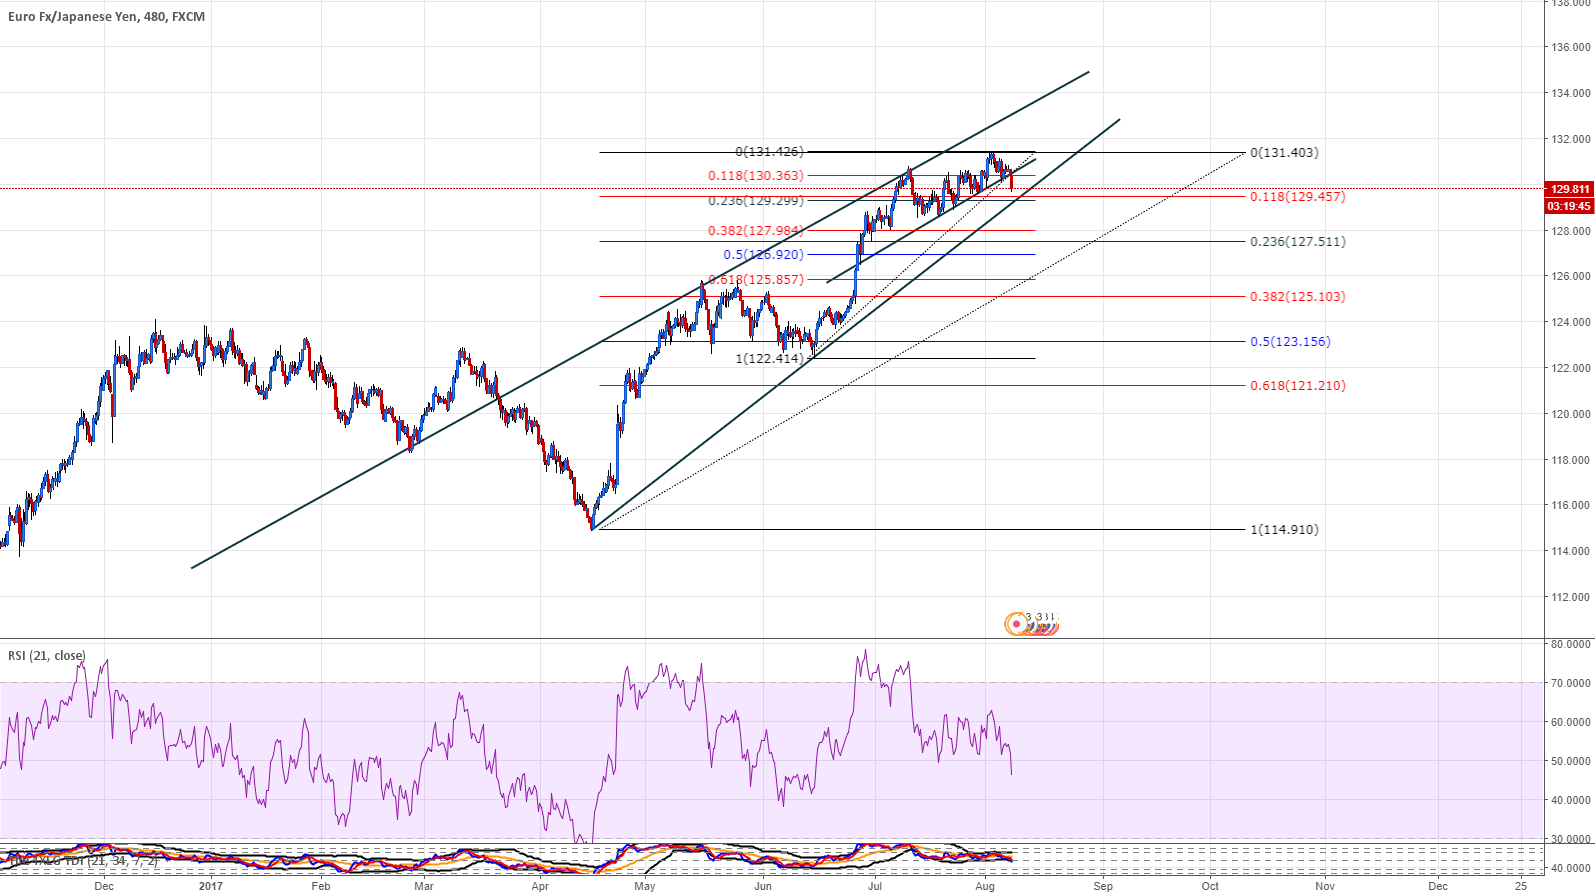 EURJPY let see what we can get from that